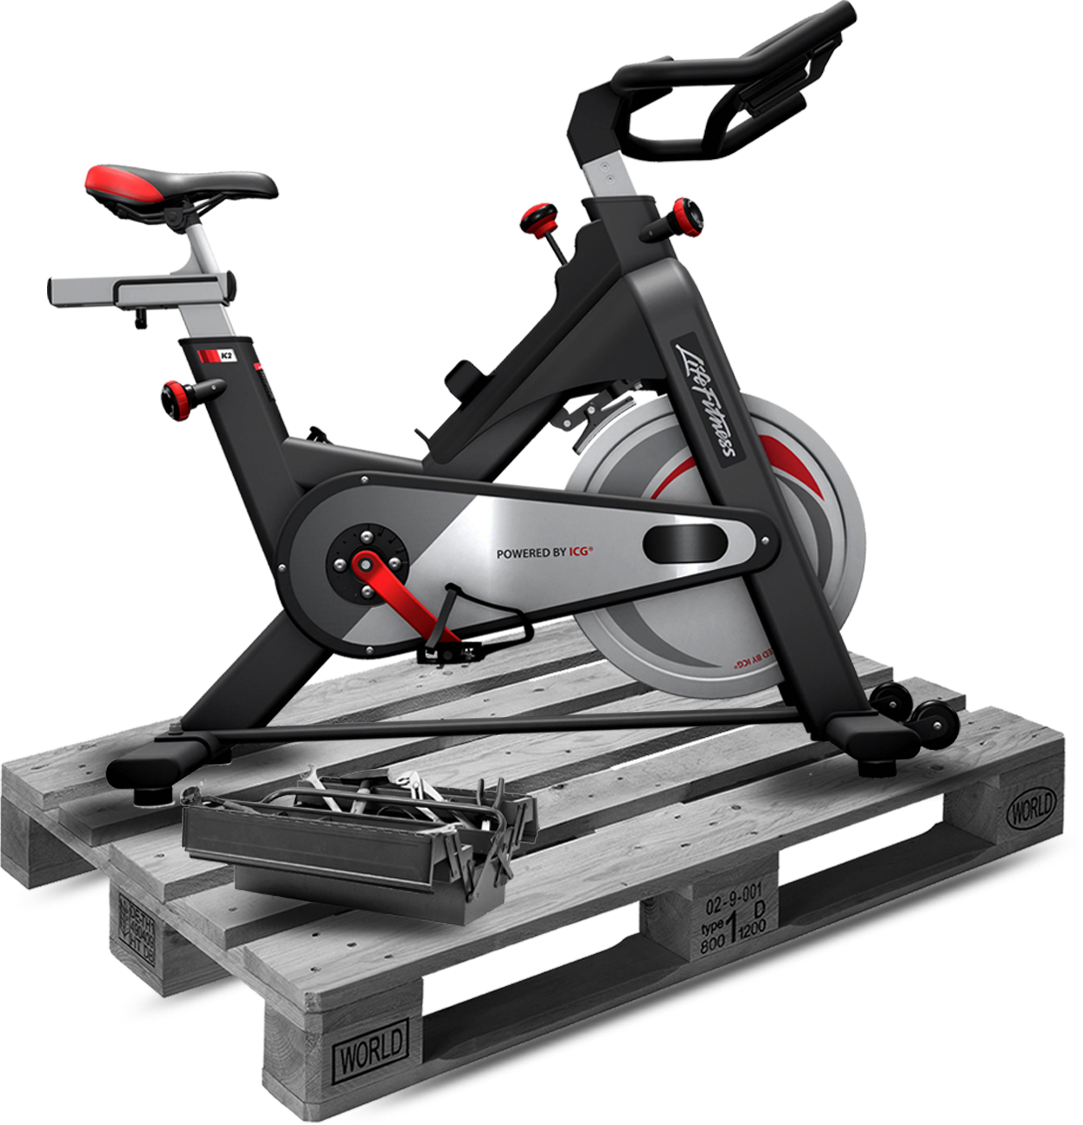 keiser fitness indoor bikes m3 m3i g nstig kaufen. Black Bedroom Furniture Sets. Home Design Ideas